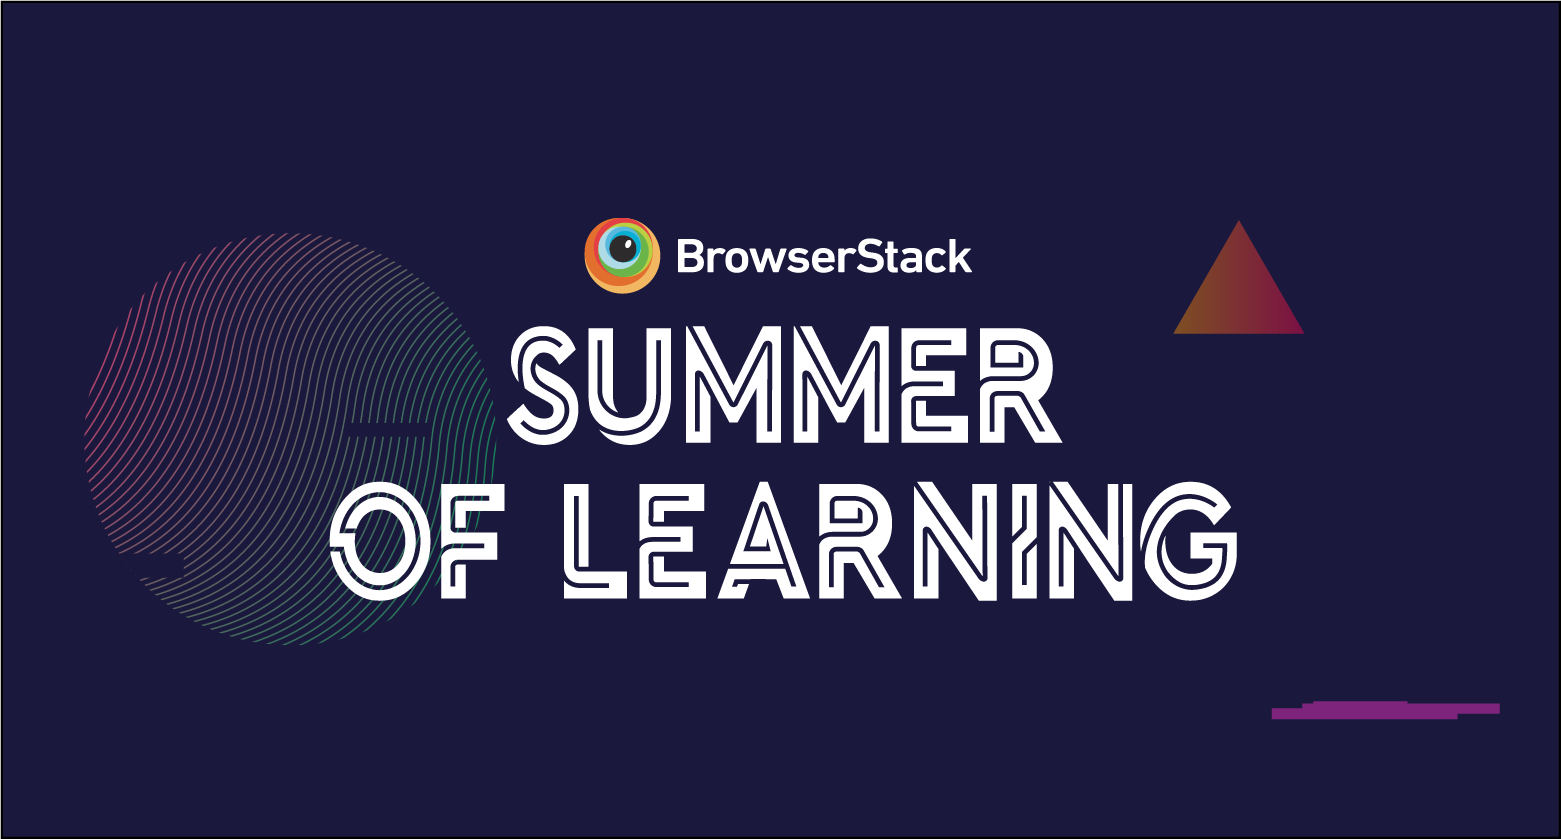 BrowserStack Summer of Learning